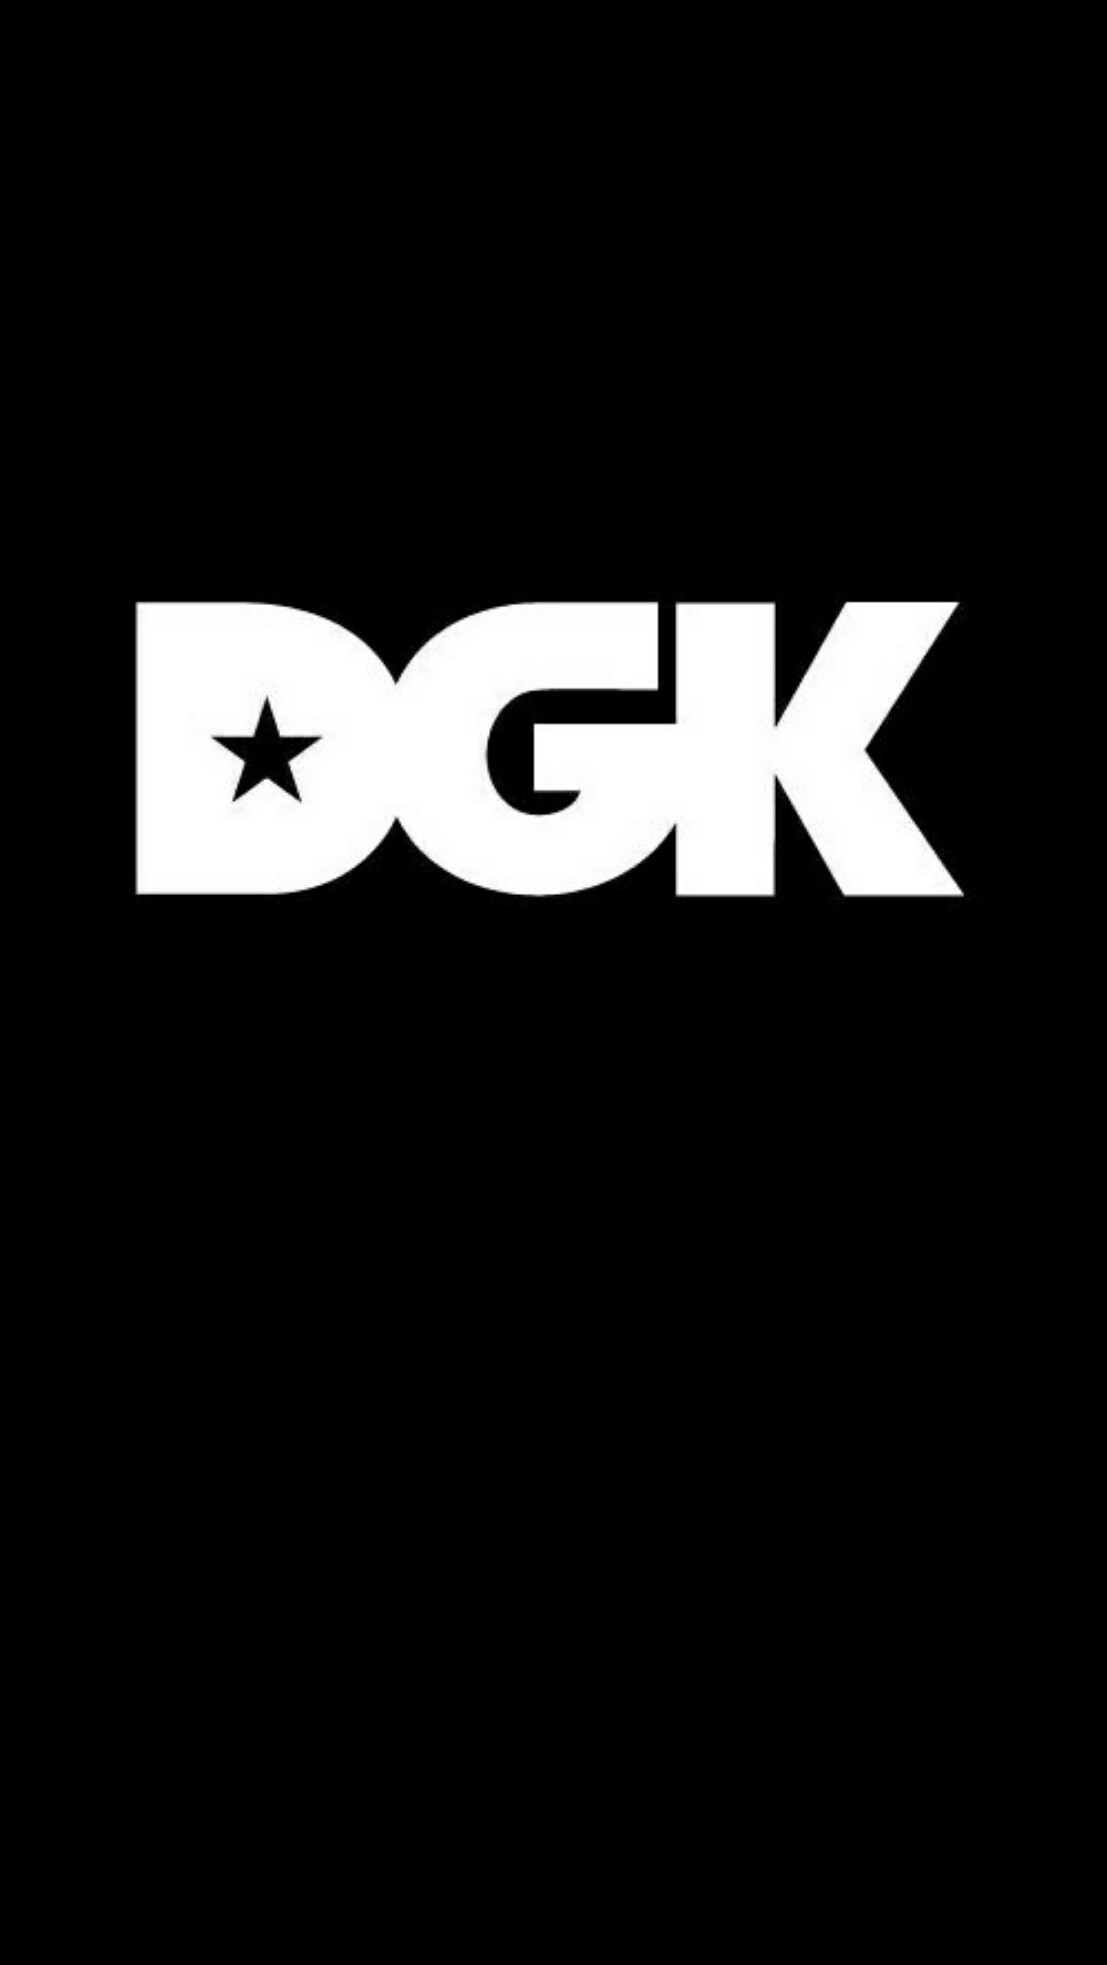 dgk-black-iPhone-android-wallpaper-wp34038